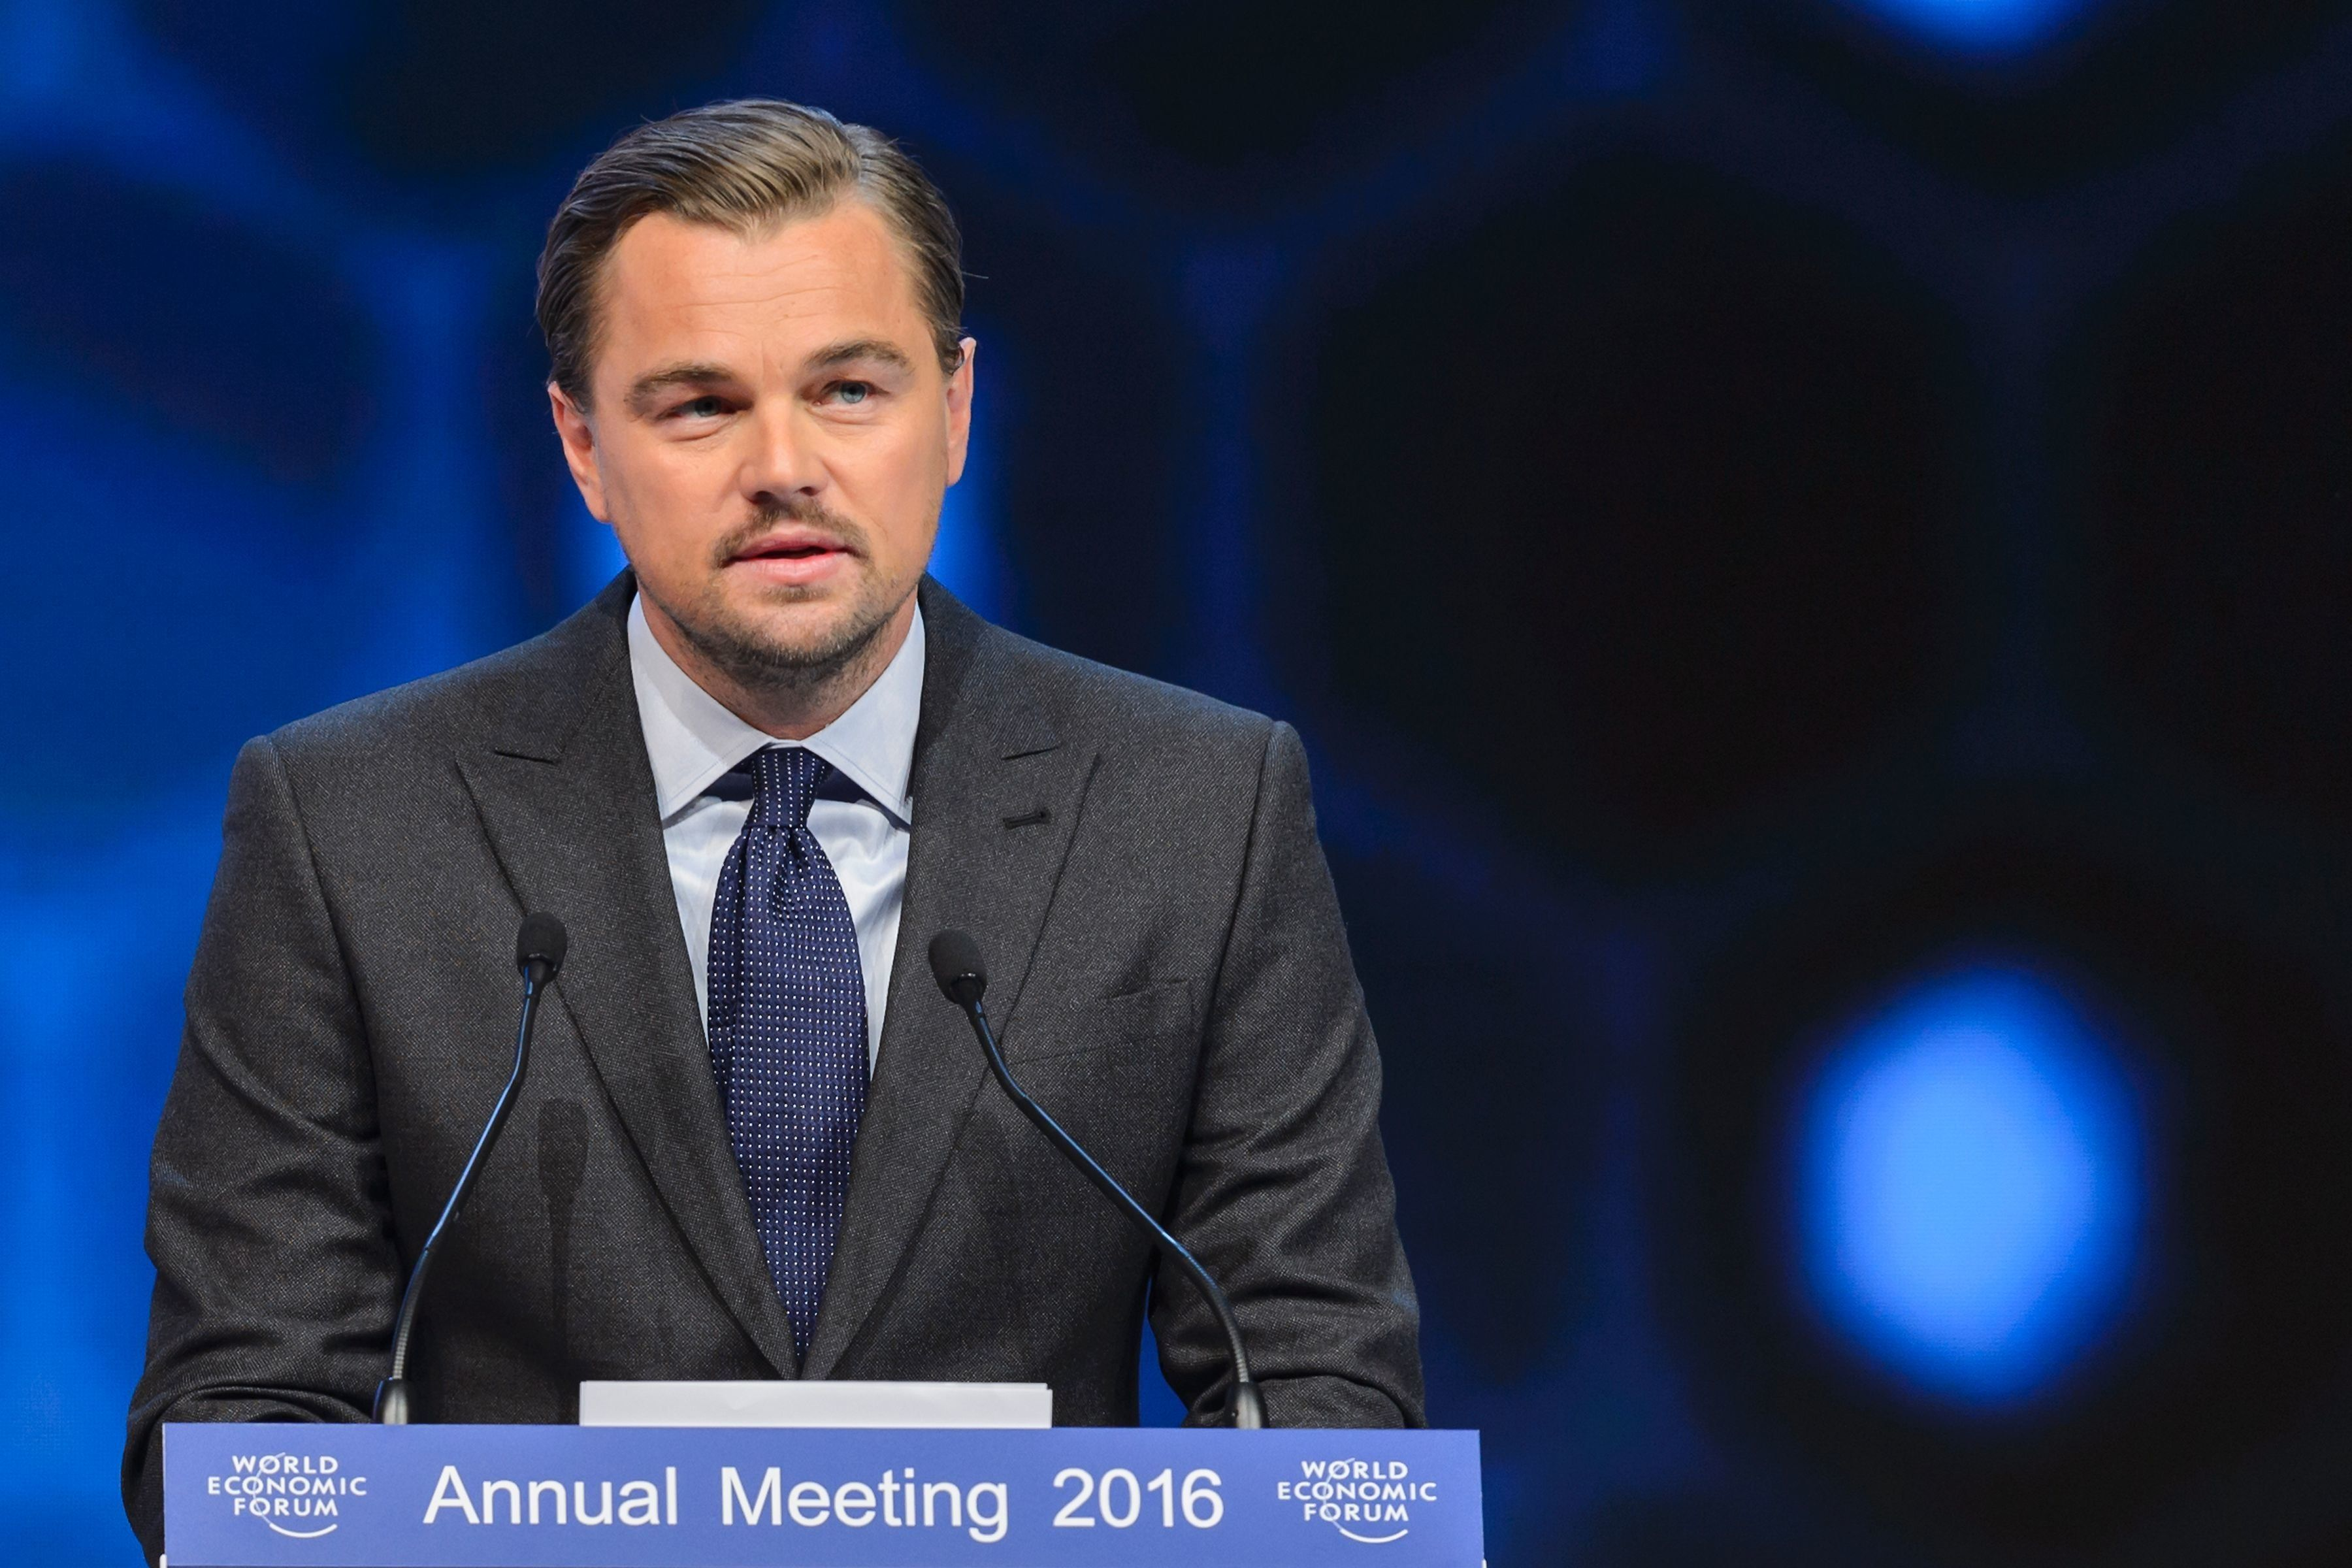 Leonardo DiCaprio delivers a speech after he was awarded during the 22nd Annual Crystal Awards at the opening of the World Ec